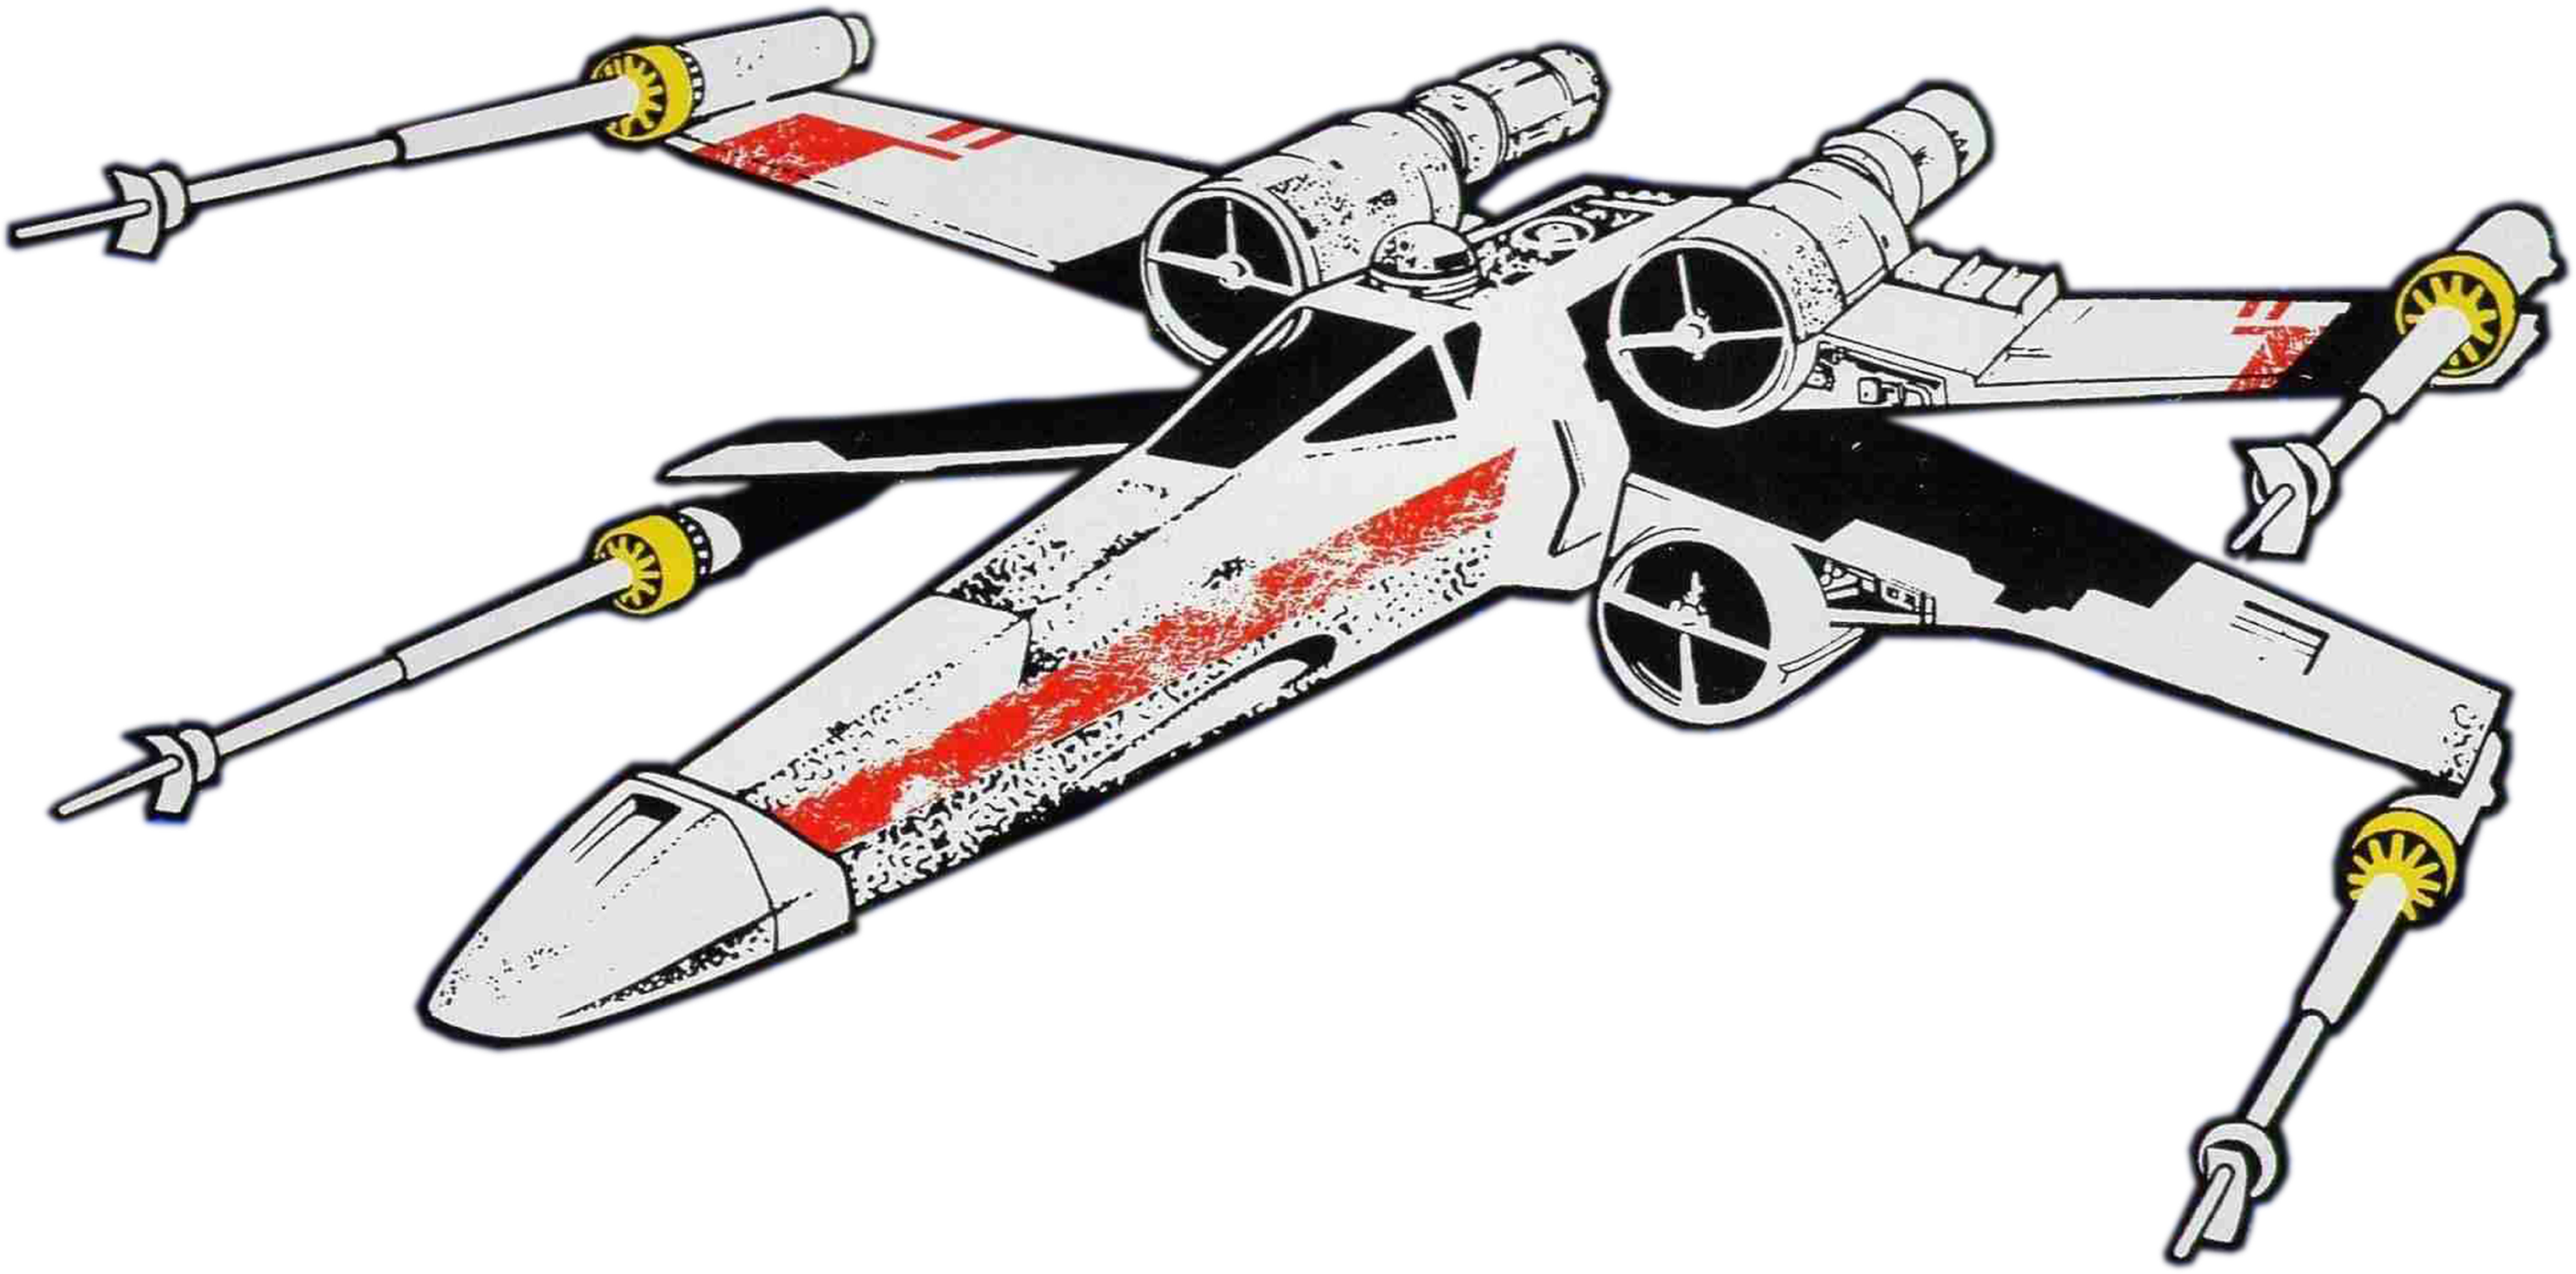 Star wars x wing clipart clipart transparent library Star Wars Mini: Artwork clipart transparent library